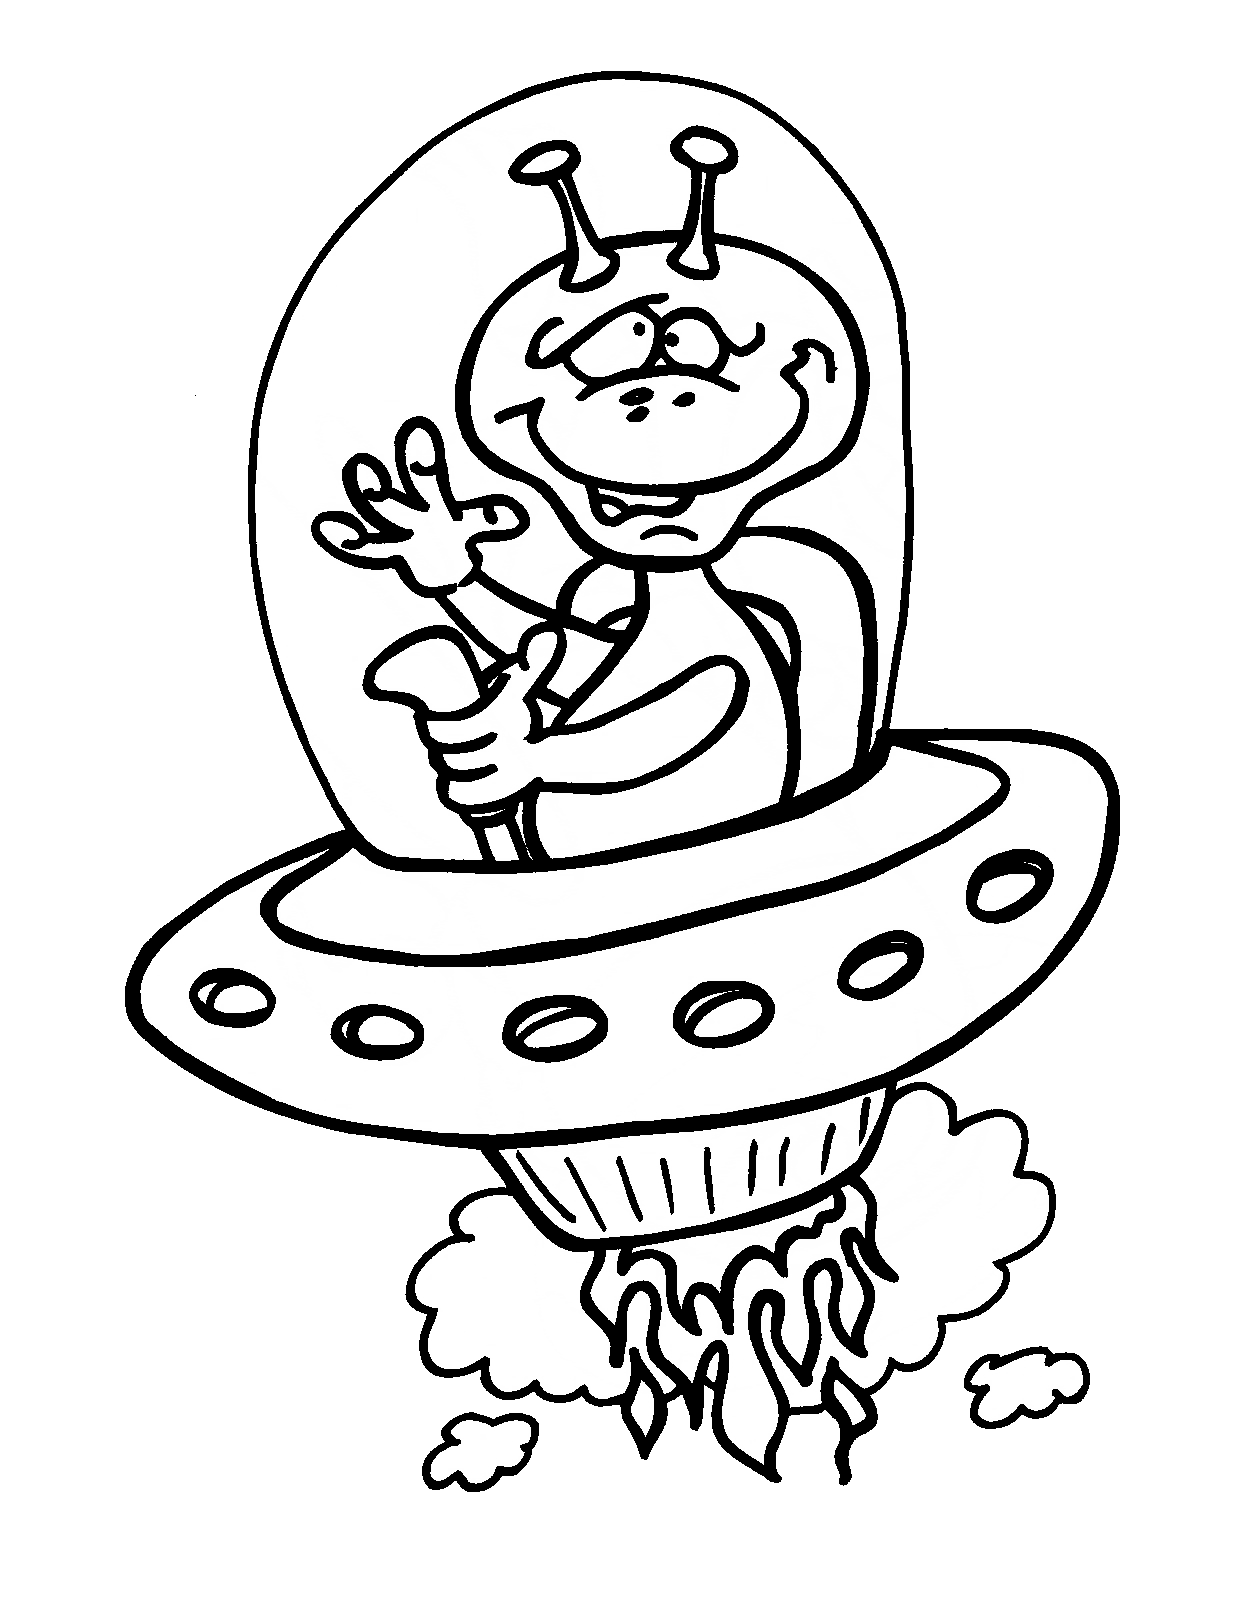 Aliens It Rides Flying Saucer Coloring Pages For Kids Dvm Printable Space And Aliens Coloring Pages Coloring Pages Animal Coloring Pages Lego Coloring Pages